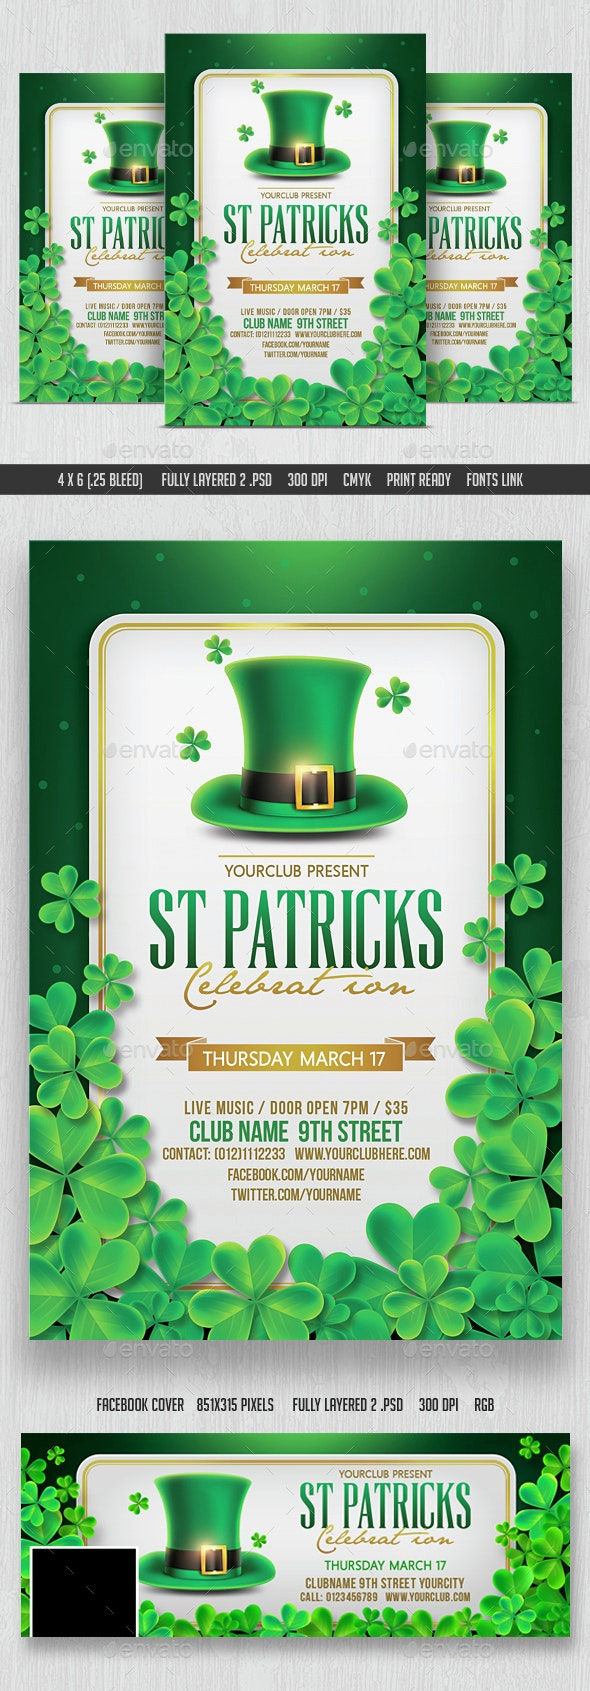 St Patricks Day Flyer & Facebook Cover - Events Flyers